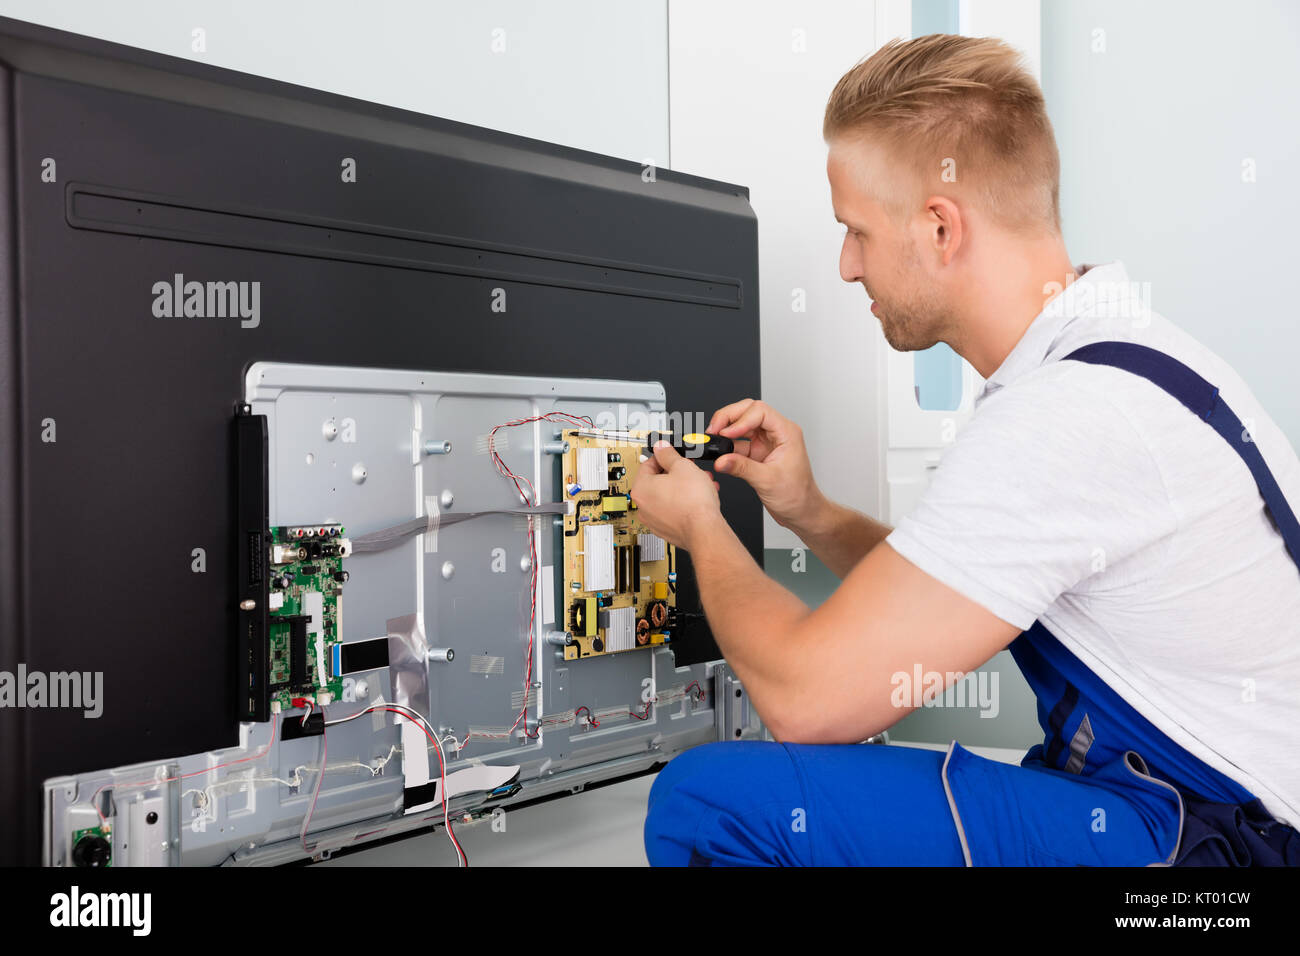 Electrician Checking Television - Stock Image